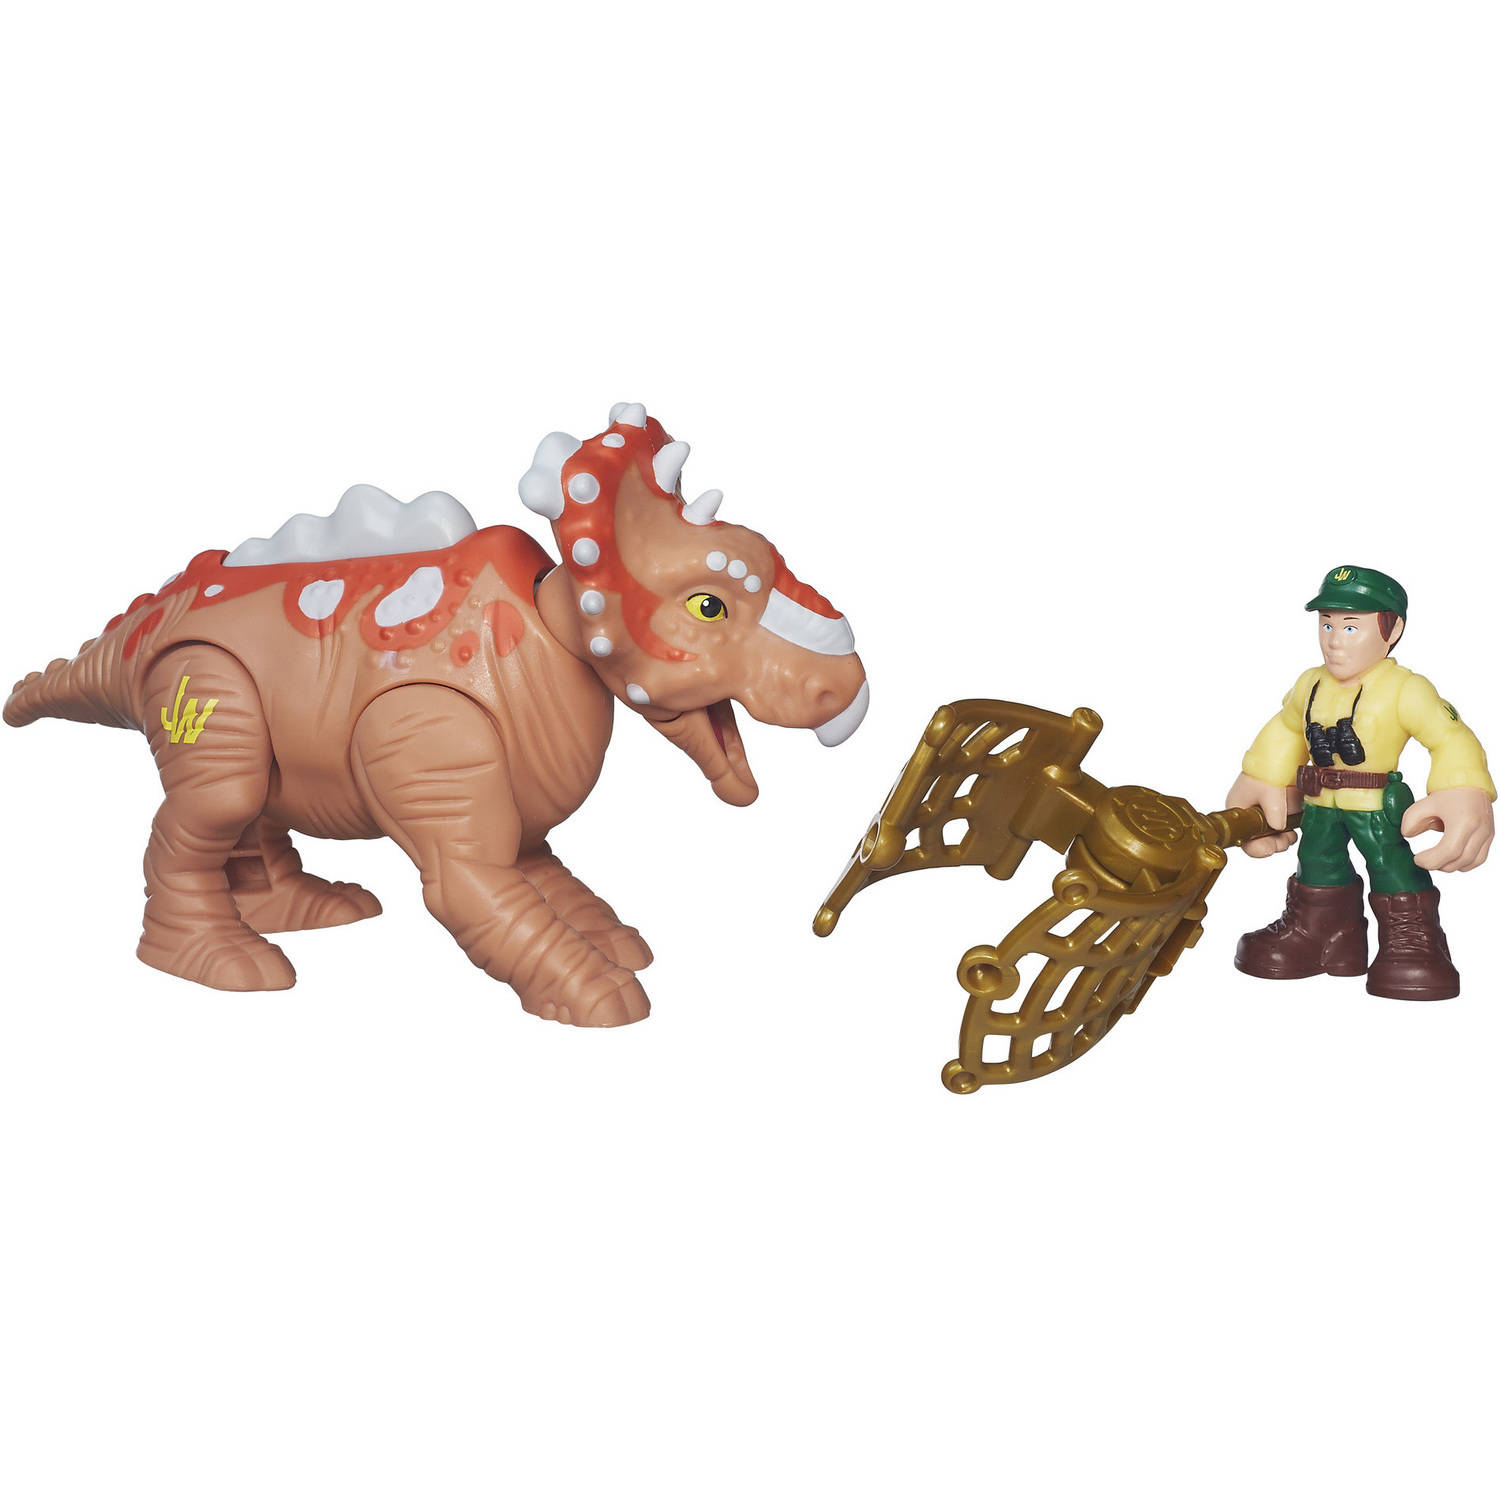 Playskool Heroes Jurassic World Pachyrhinosaurus by Jurassic World